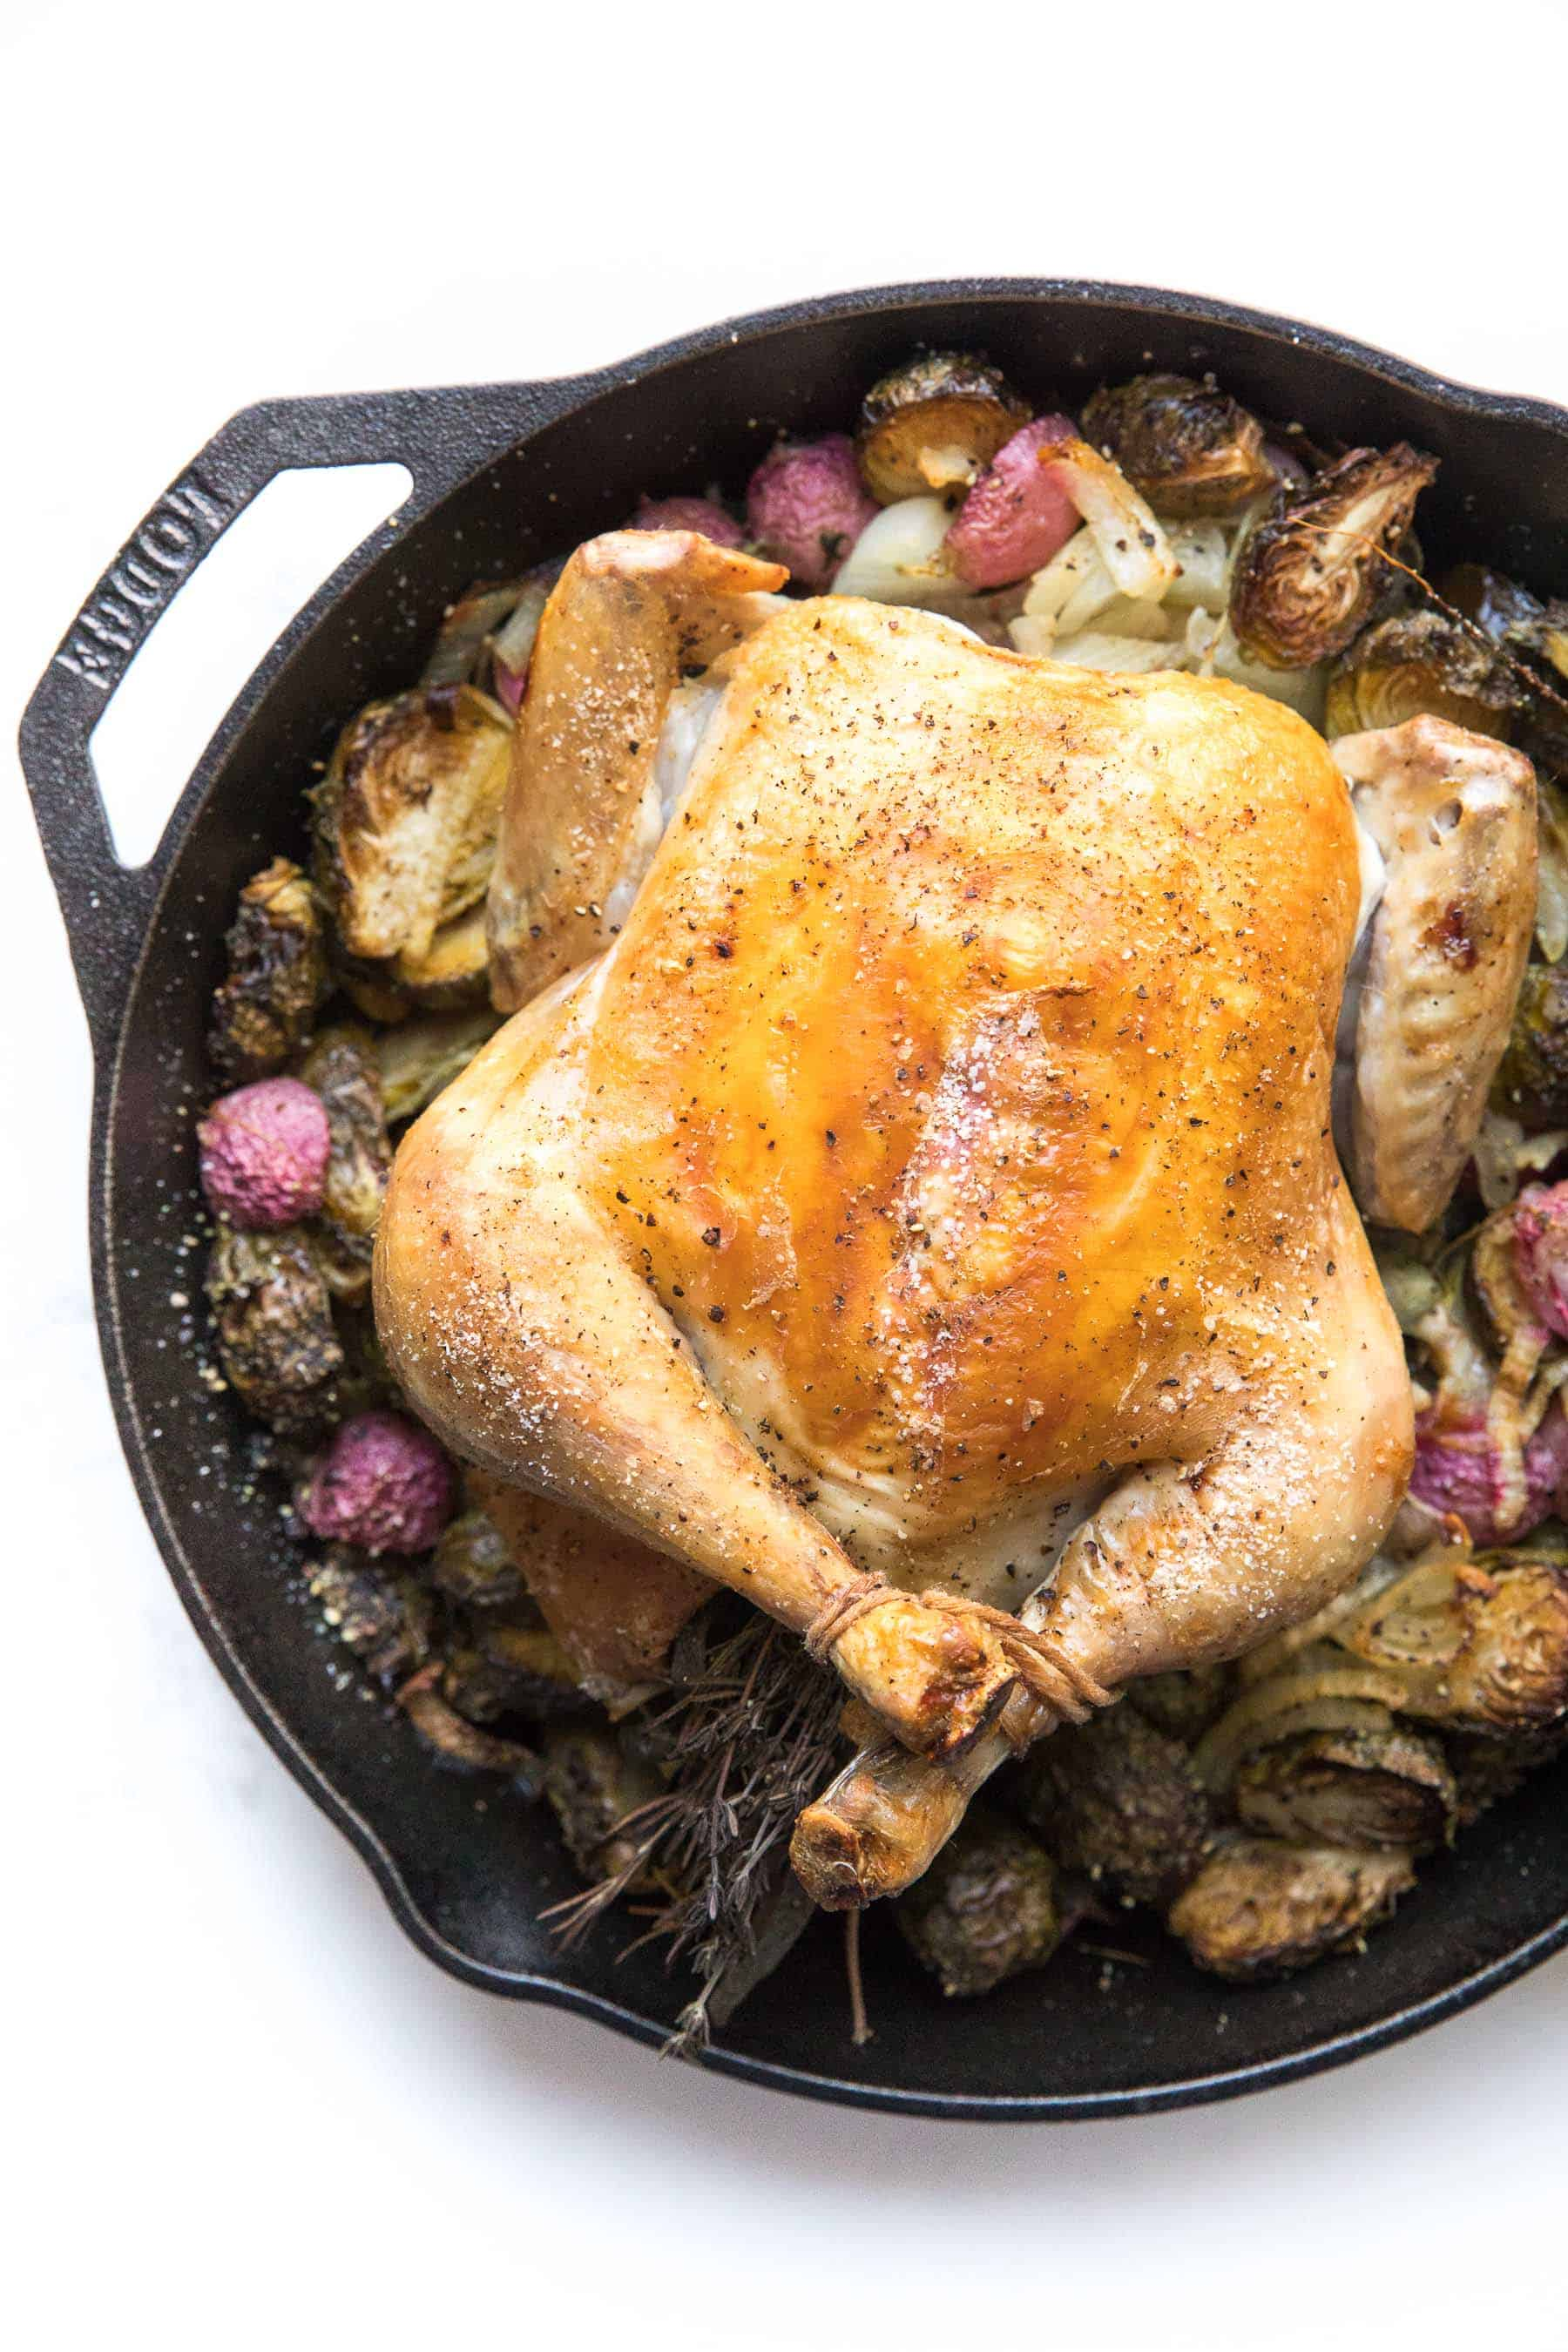 Roast chicken in a cast iron skillet with root vegetables